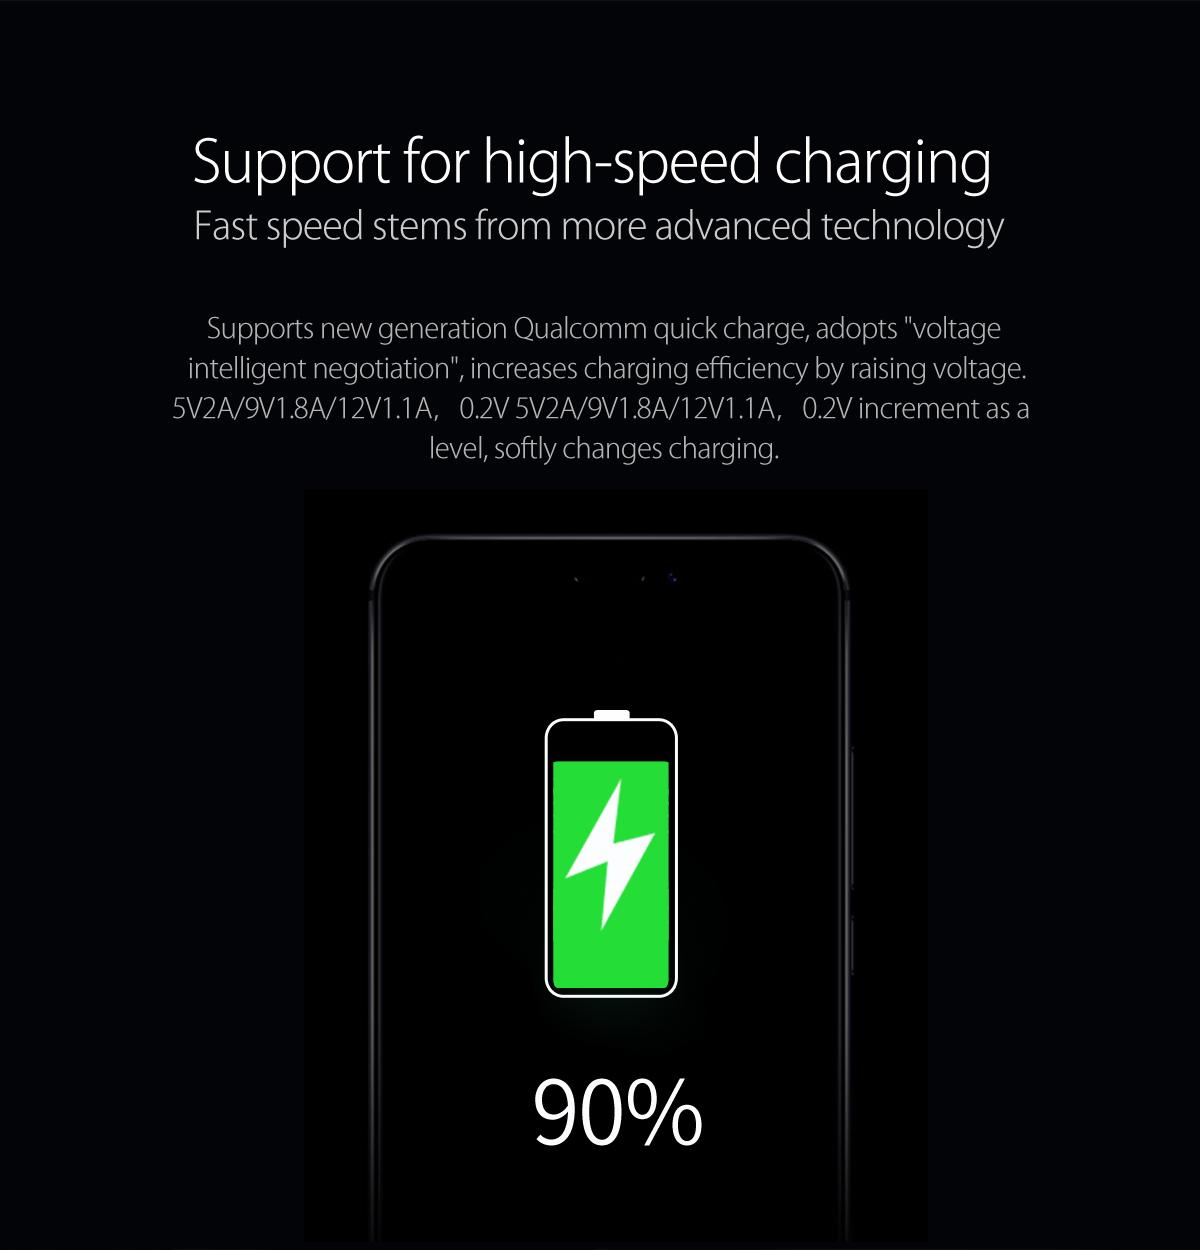 support for high-speed charging